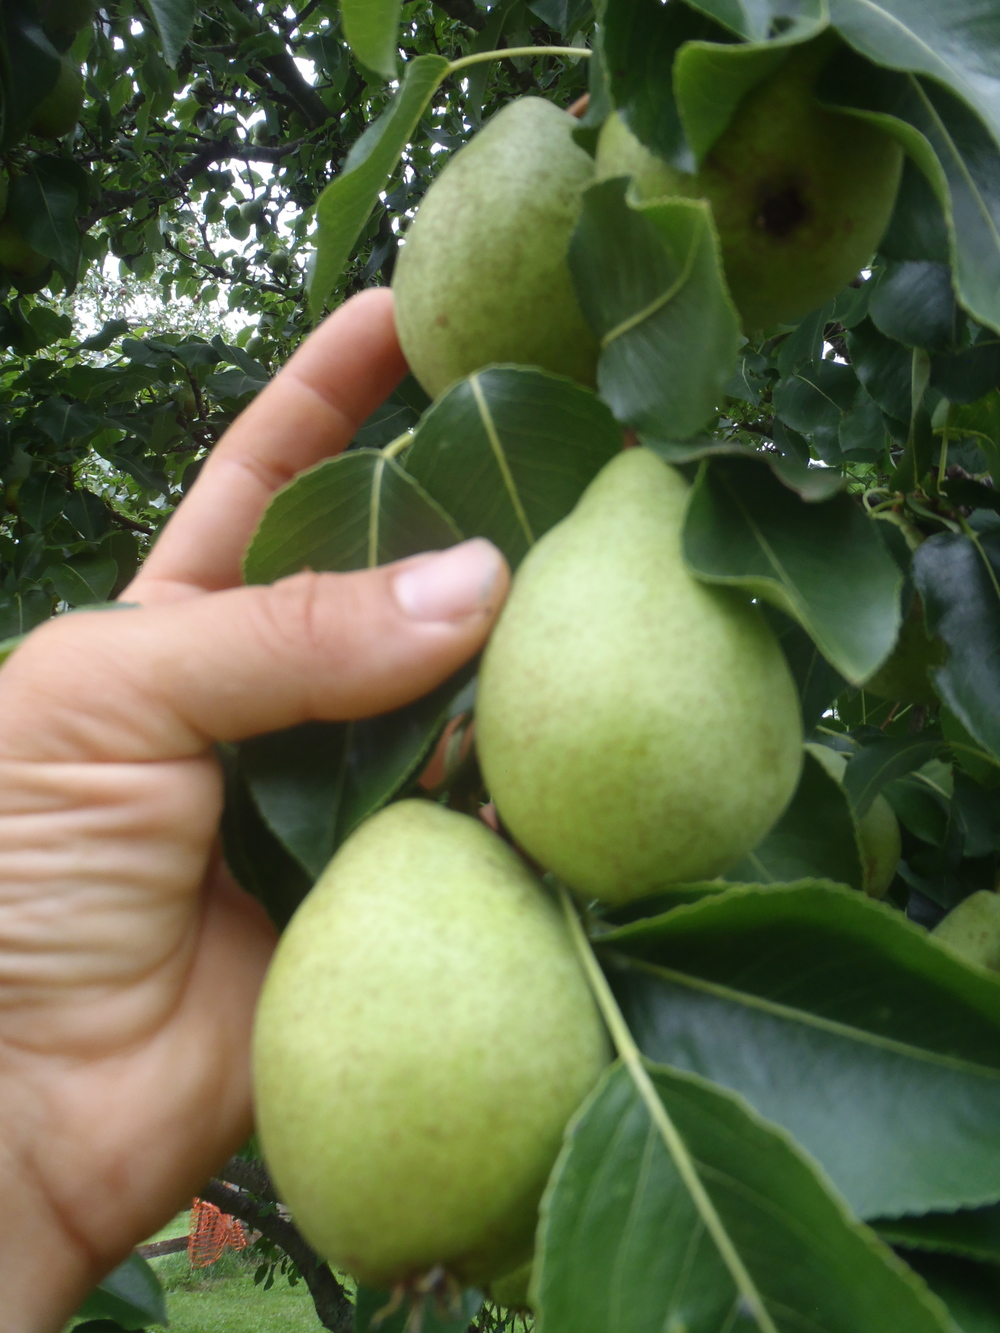 pears sizing up .jpg